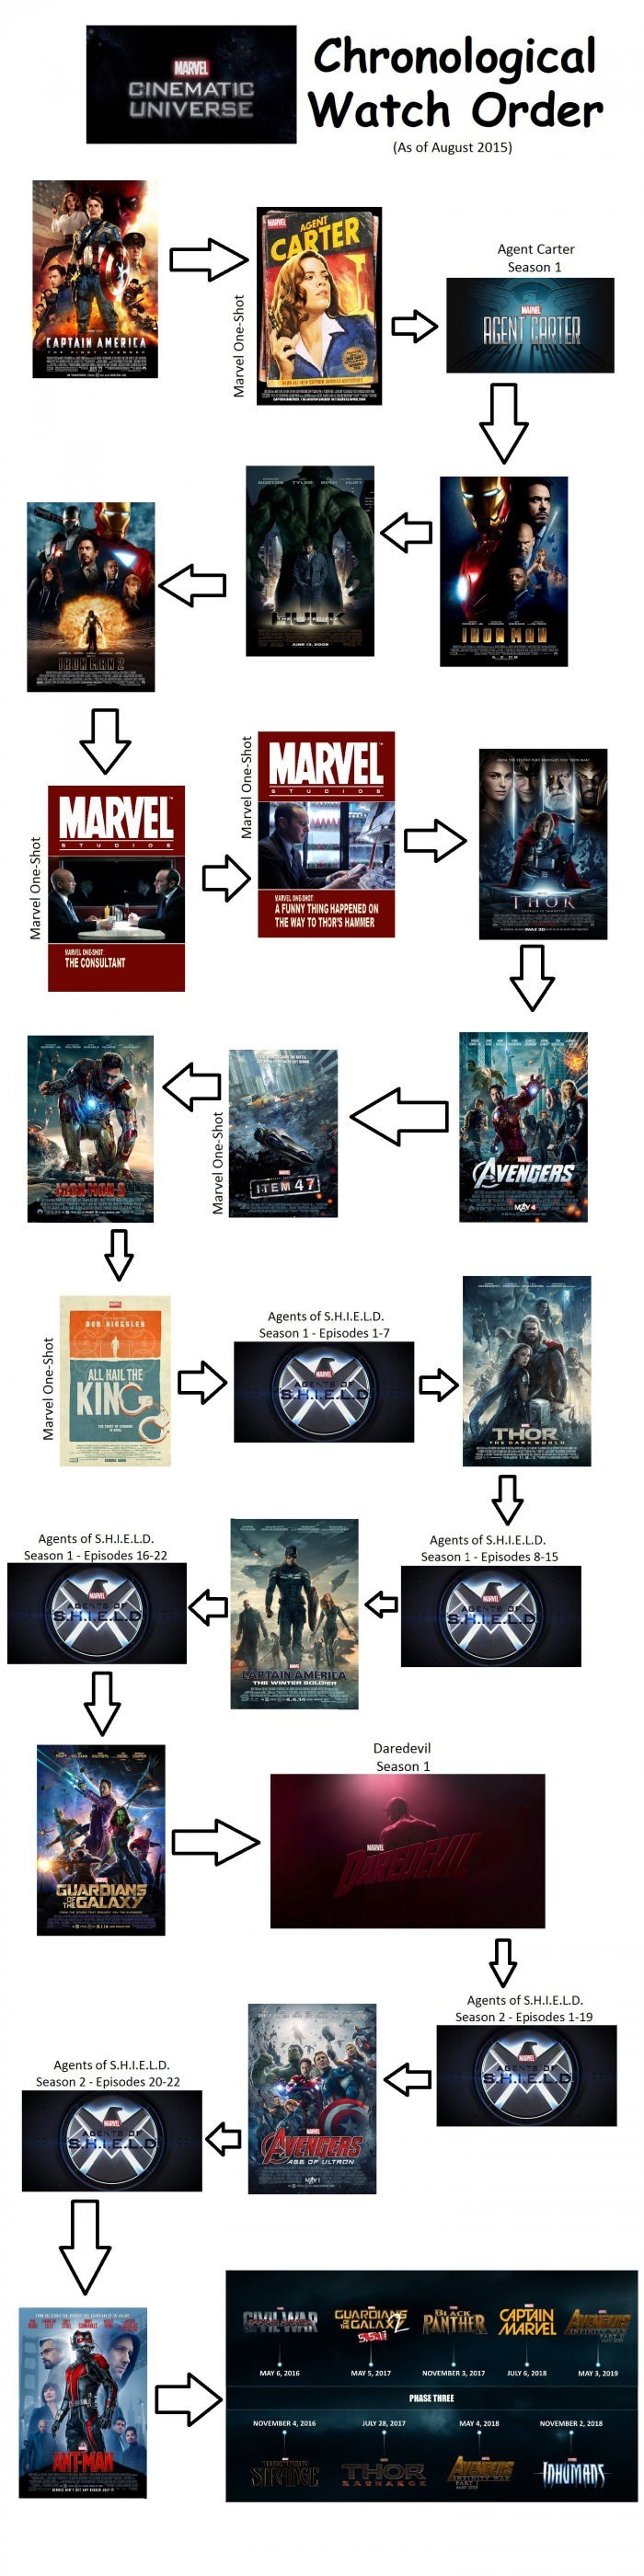 superheroes-marvel-in-chronological-order-infographic